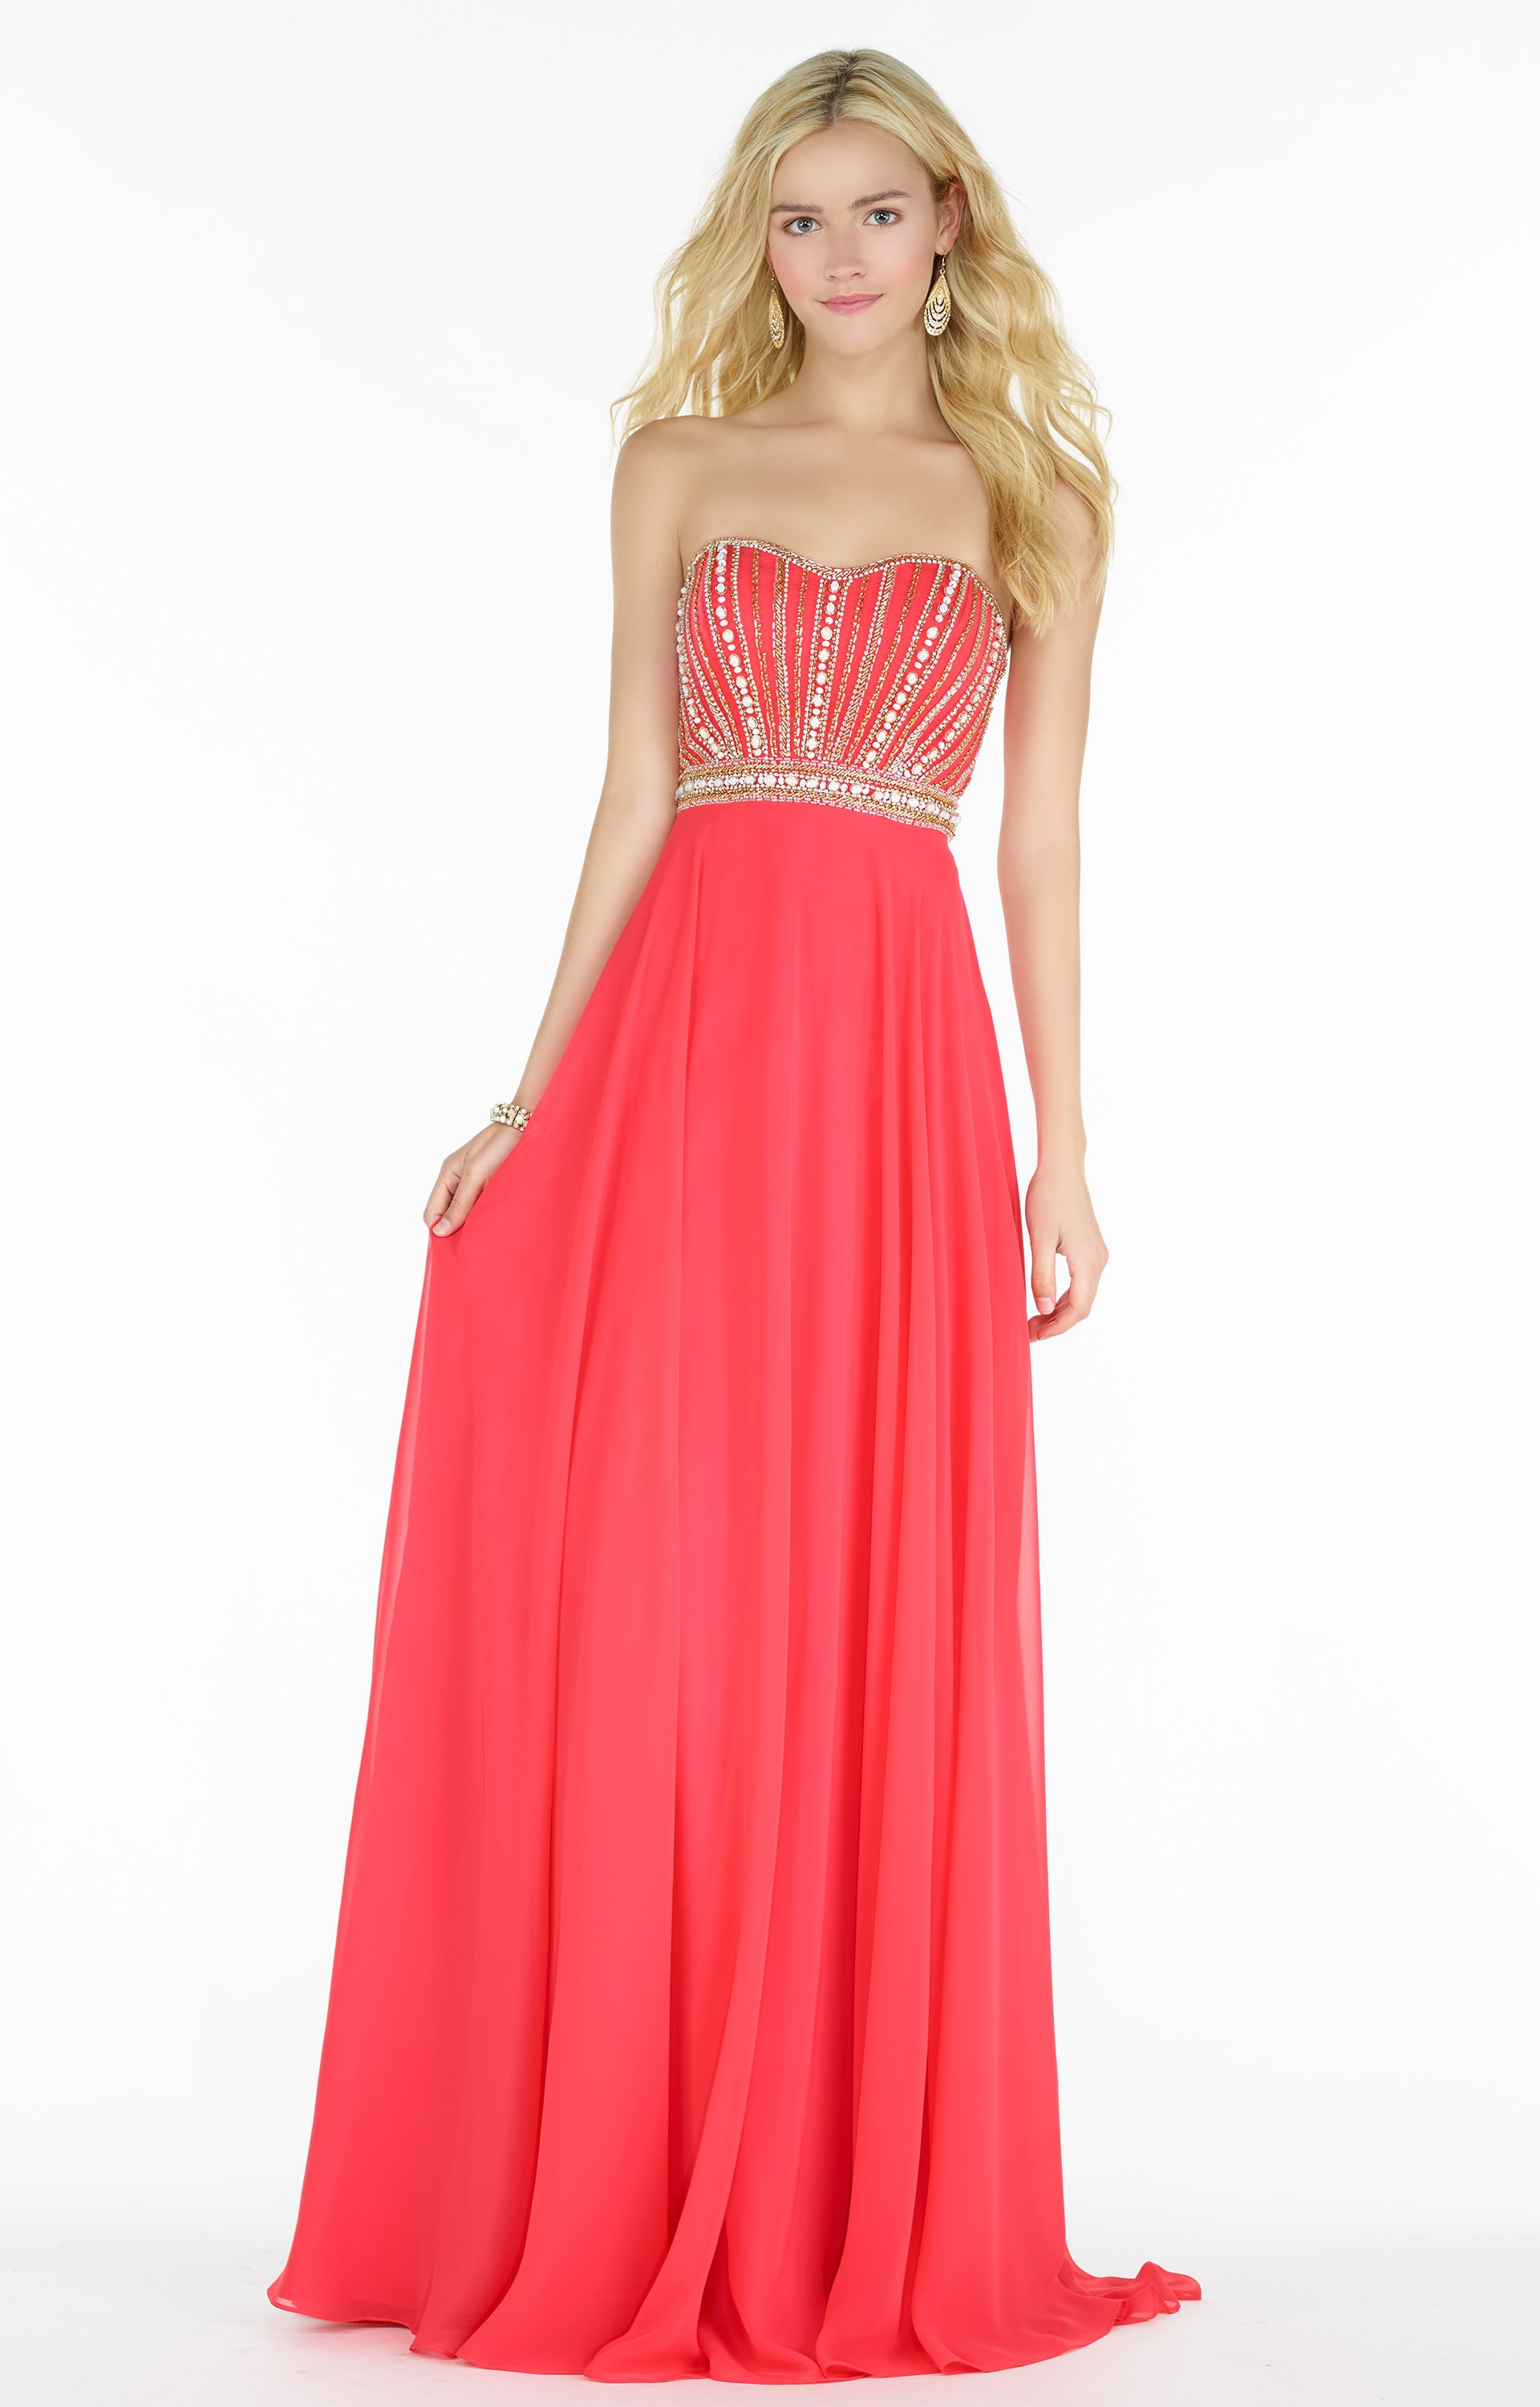 Alyce Paris 6691 Strapless Beaded Sweetheart Neckline